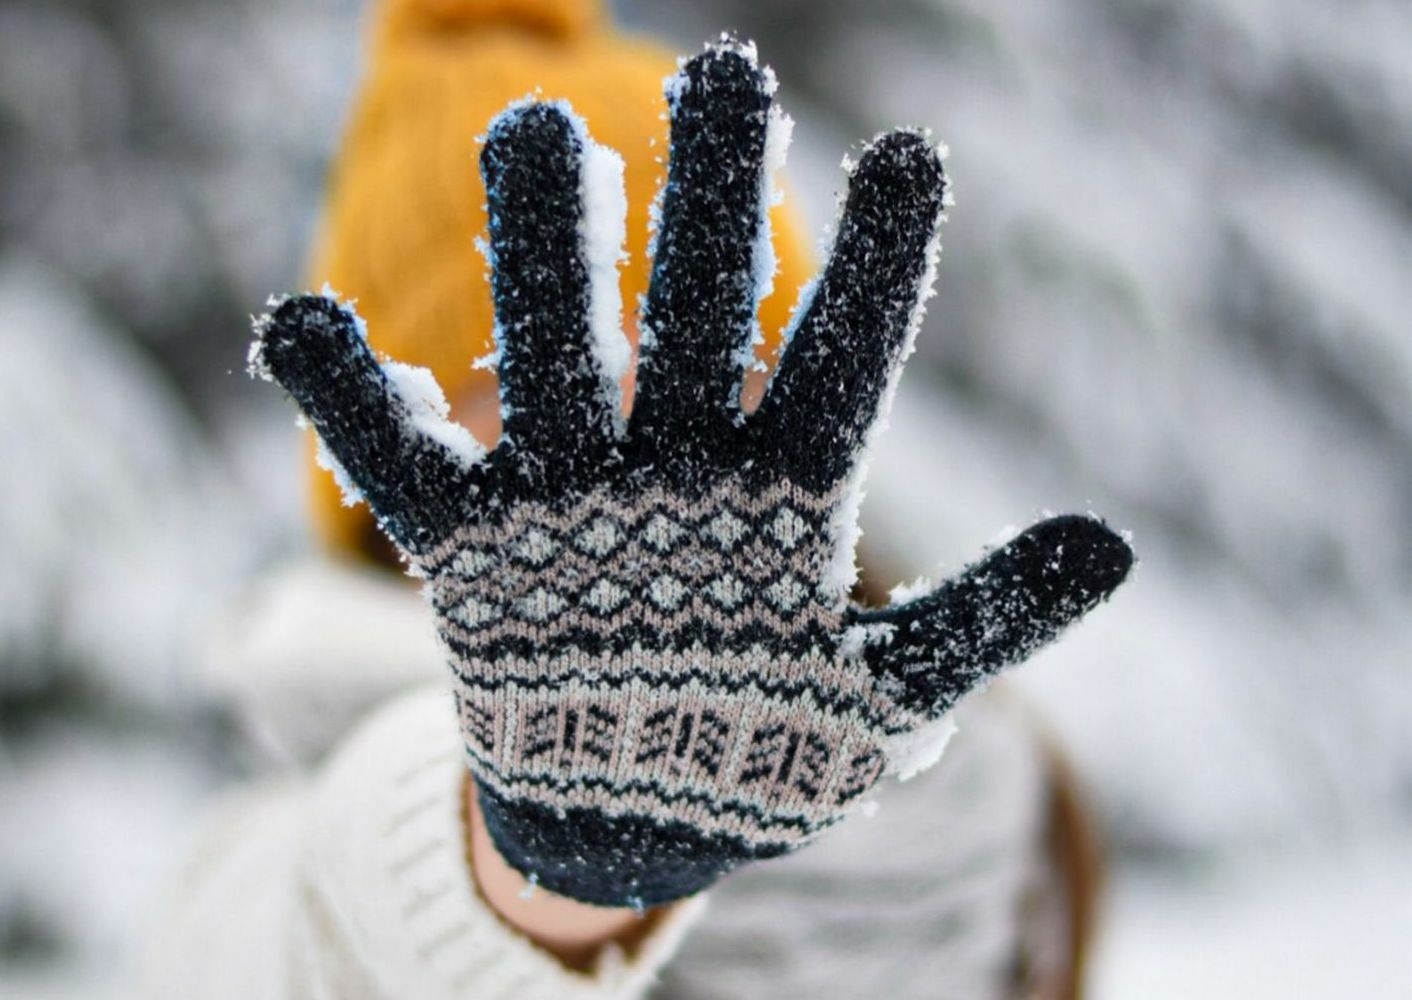 A child holding their hand out to the camera, wearing a snow-covered glove